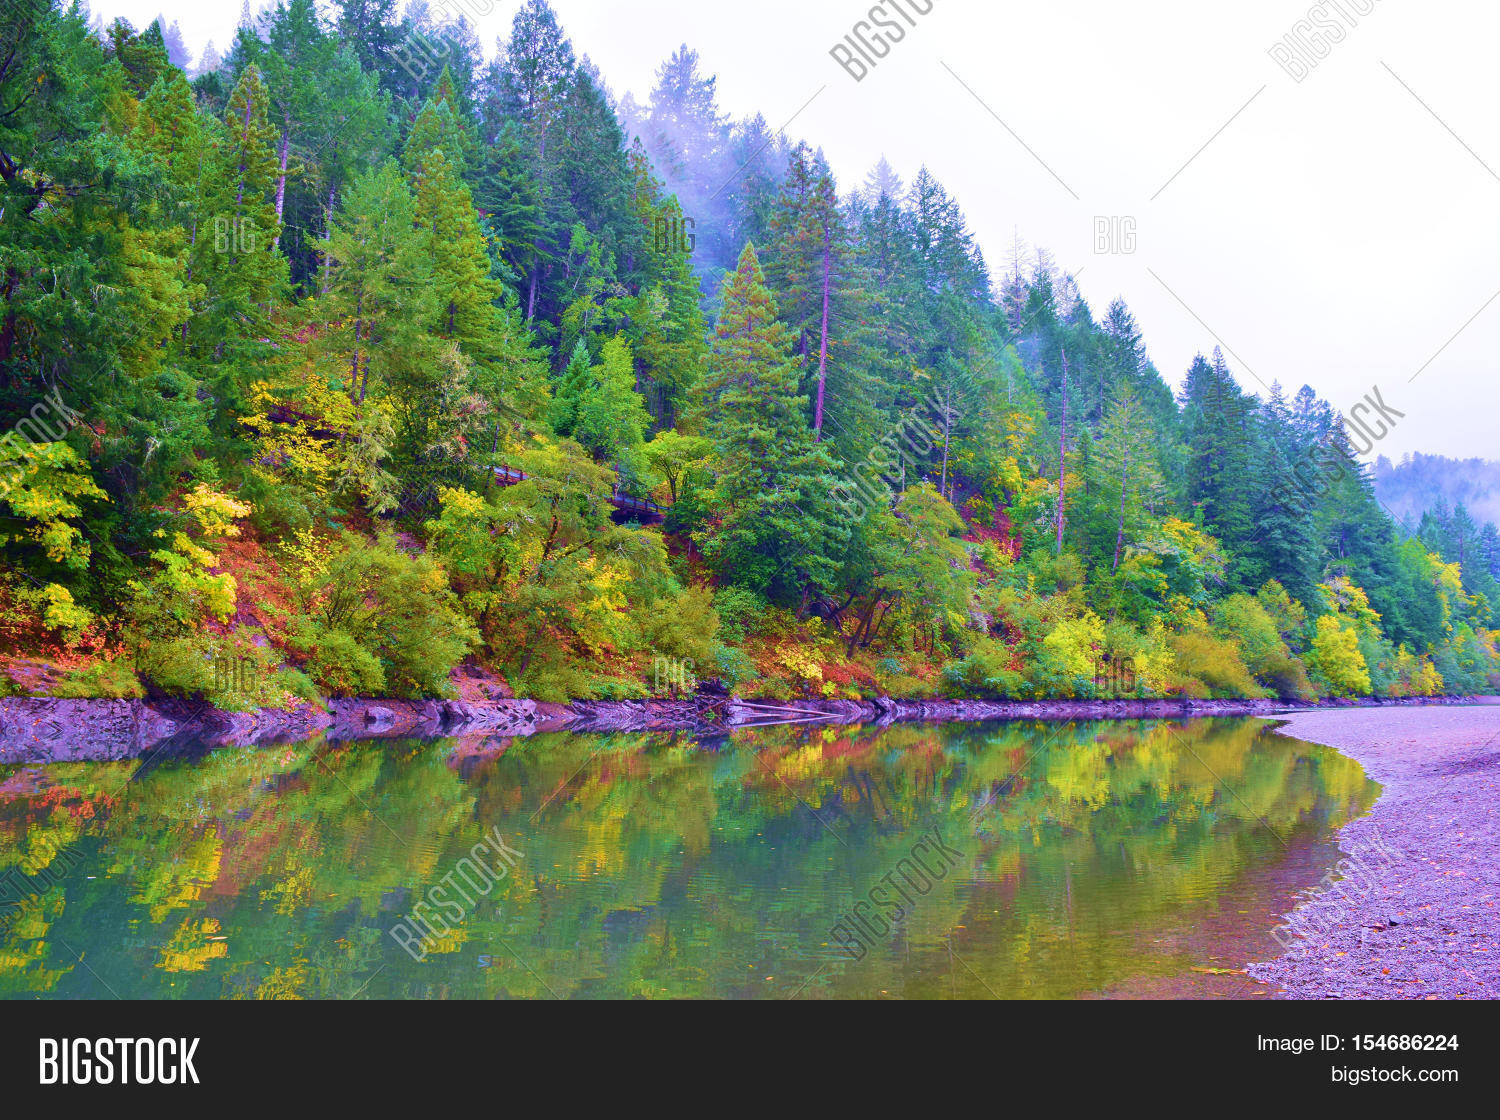 Deciduous Trees Changing Colors Image & Photo | Bigstock